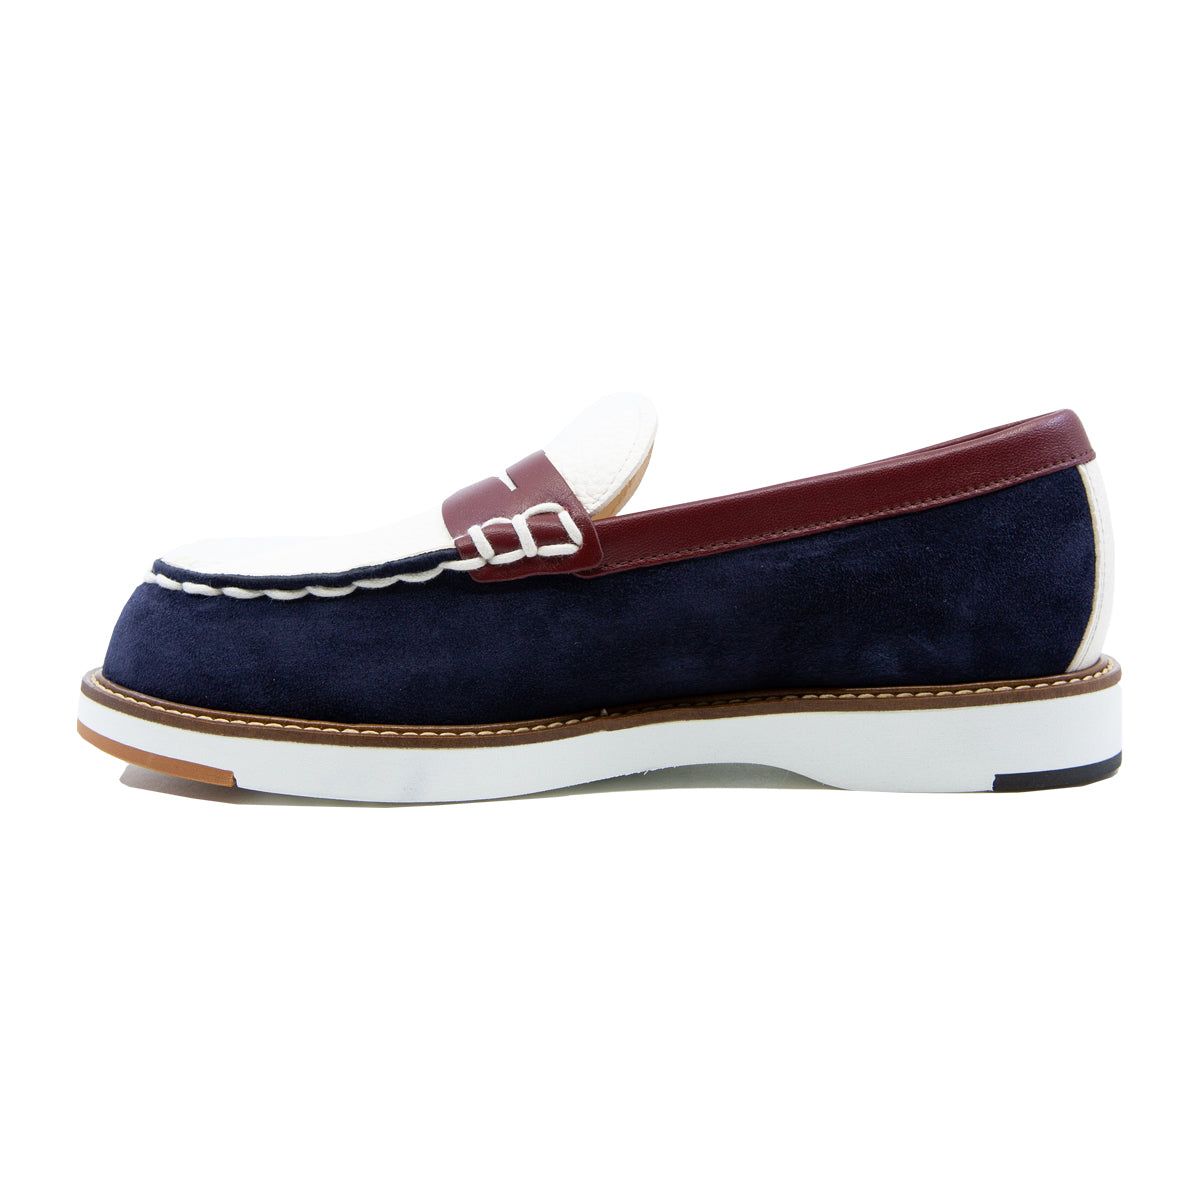 Rubber Sole Multi Tone Slip On Loafers